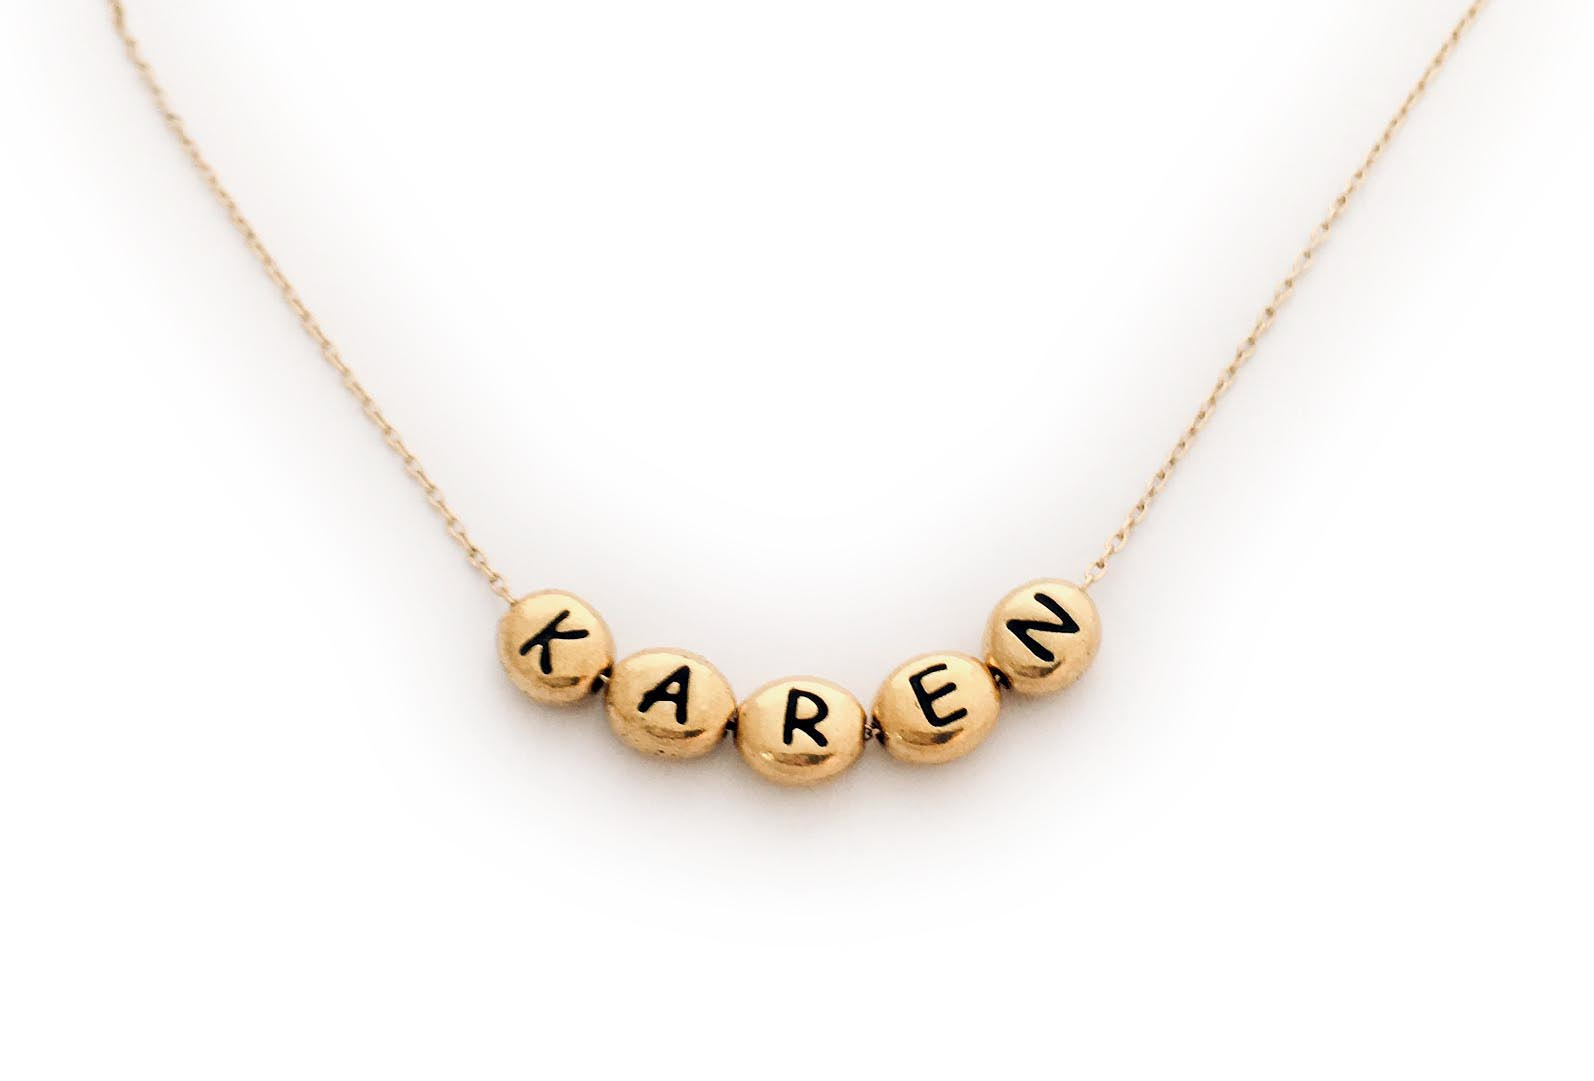 Gold Block Name Necklace with Gold Block Letters on a Gold Chain - JBL-N-Gold-Blocks